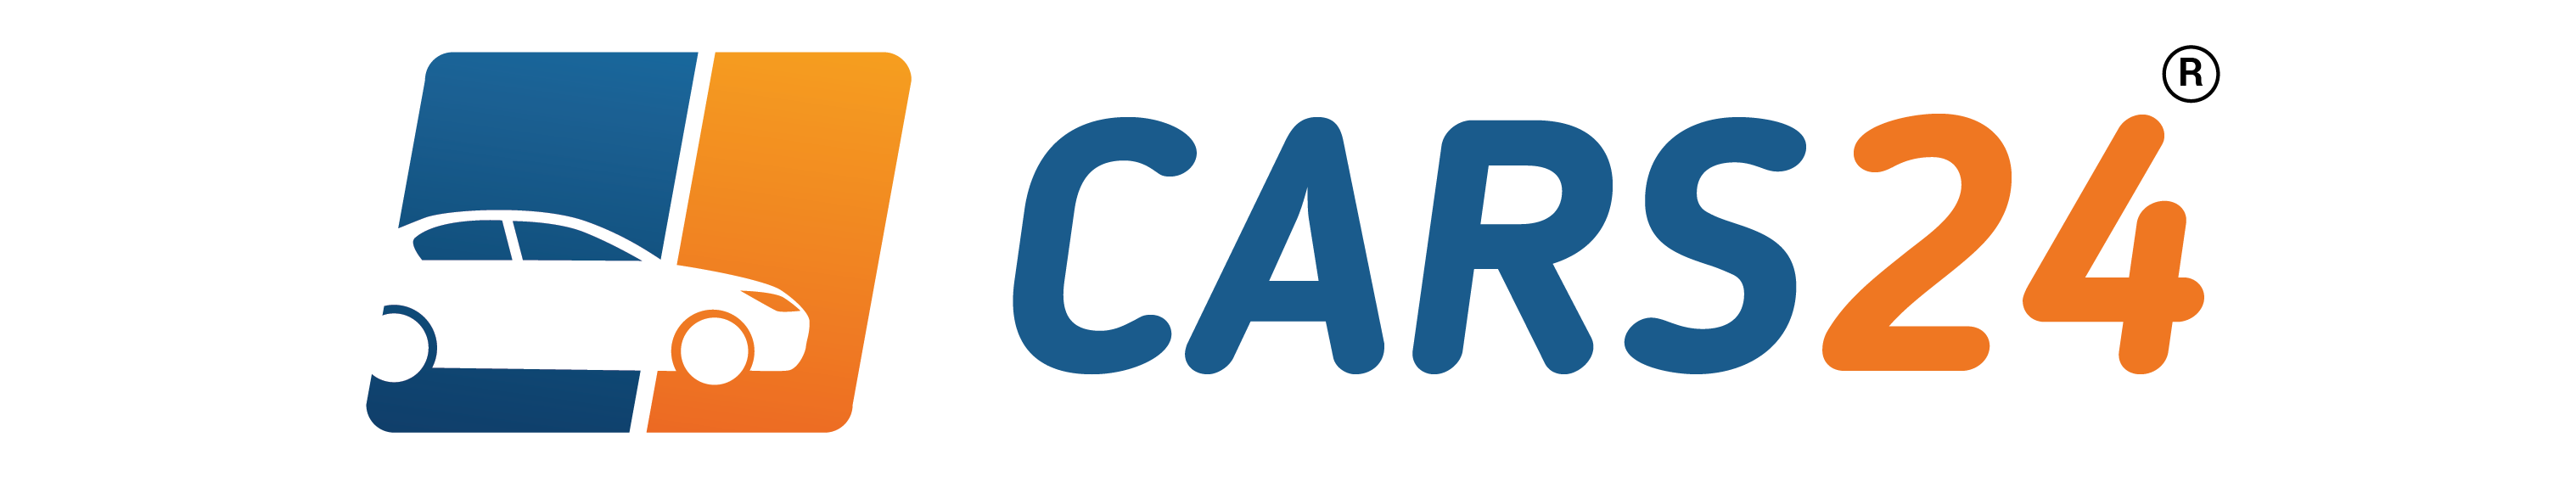 File Cars24 Official New Logo Png Wikimedia Commons